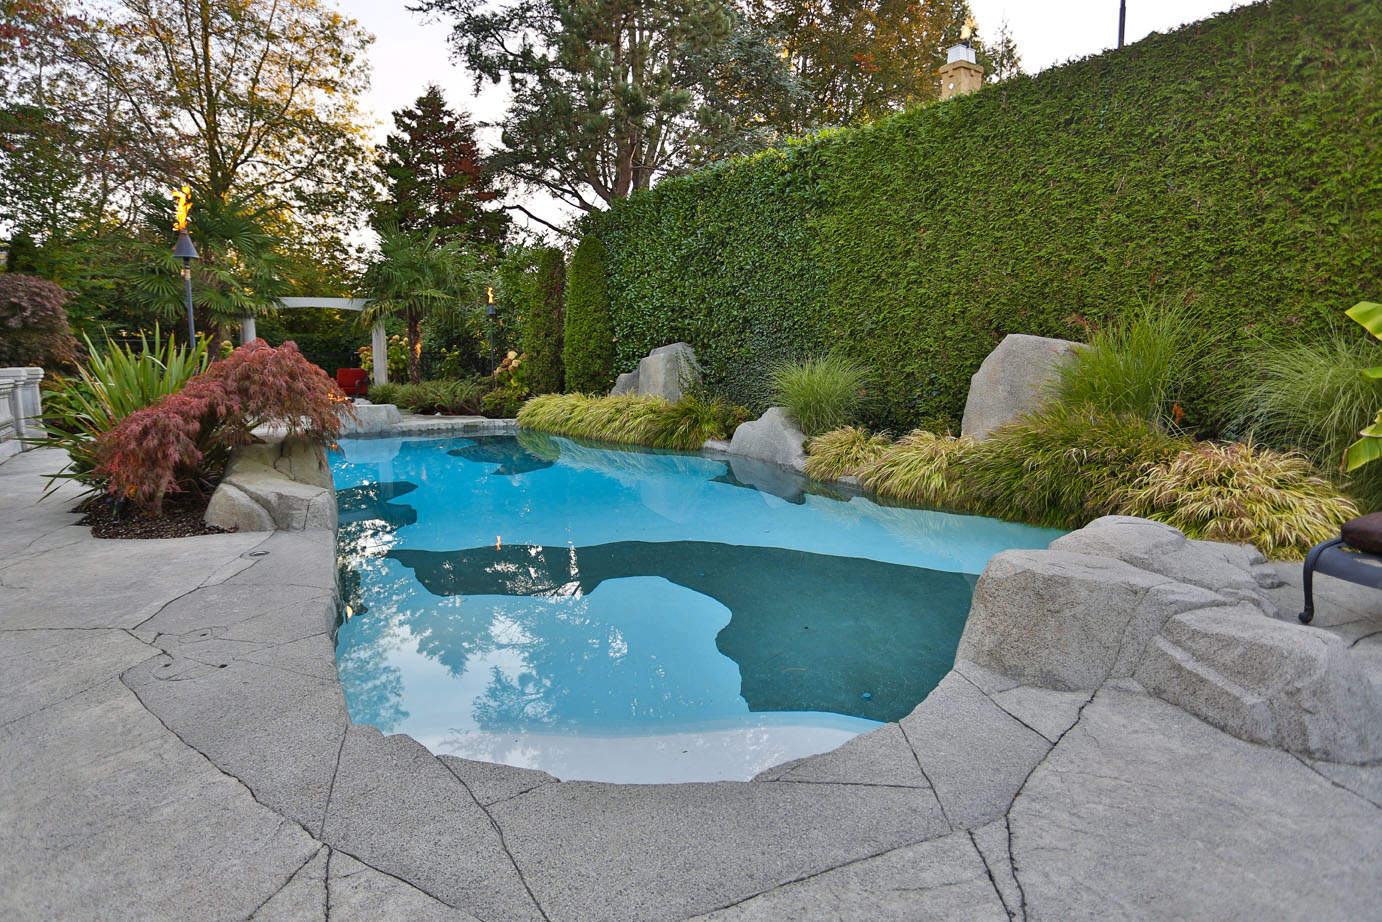 Custom designed swimming pool with unique concrete surround rock work